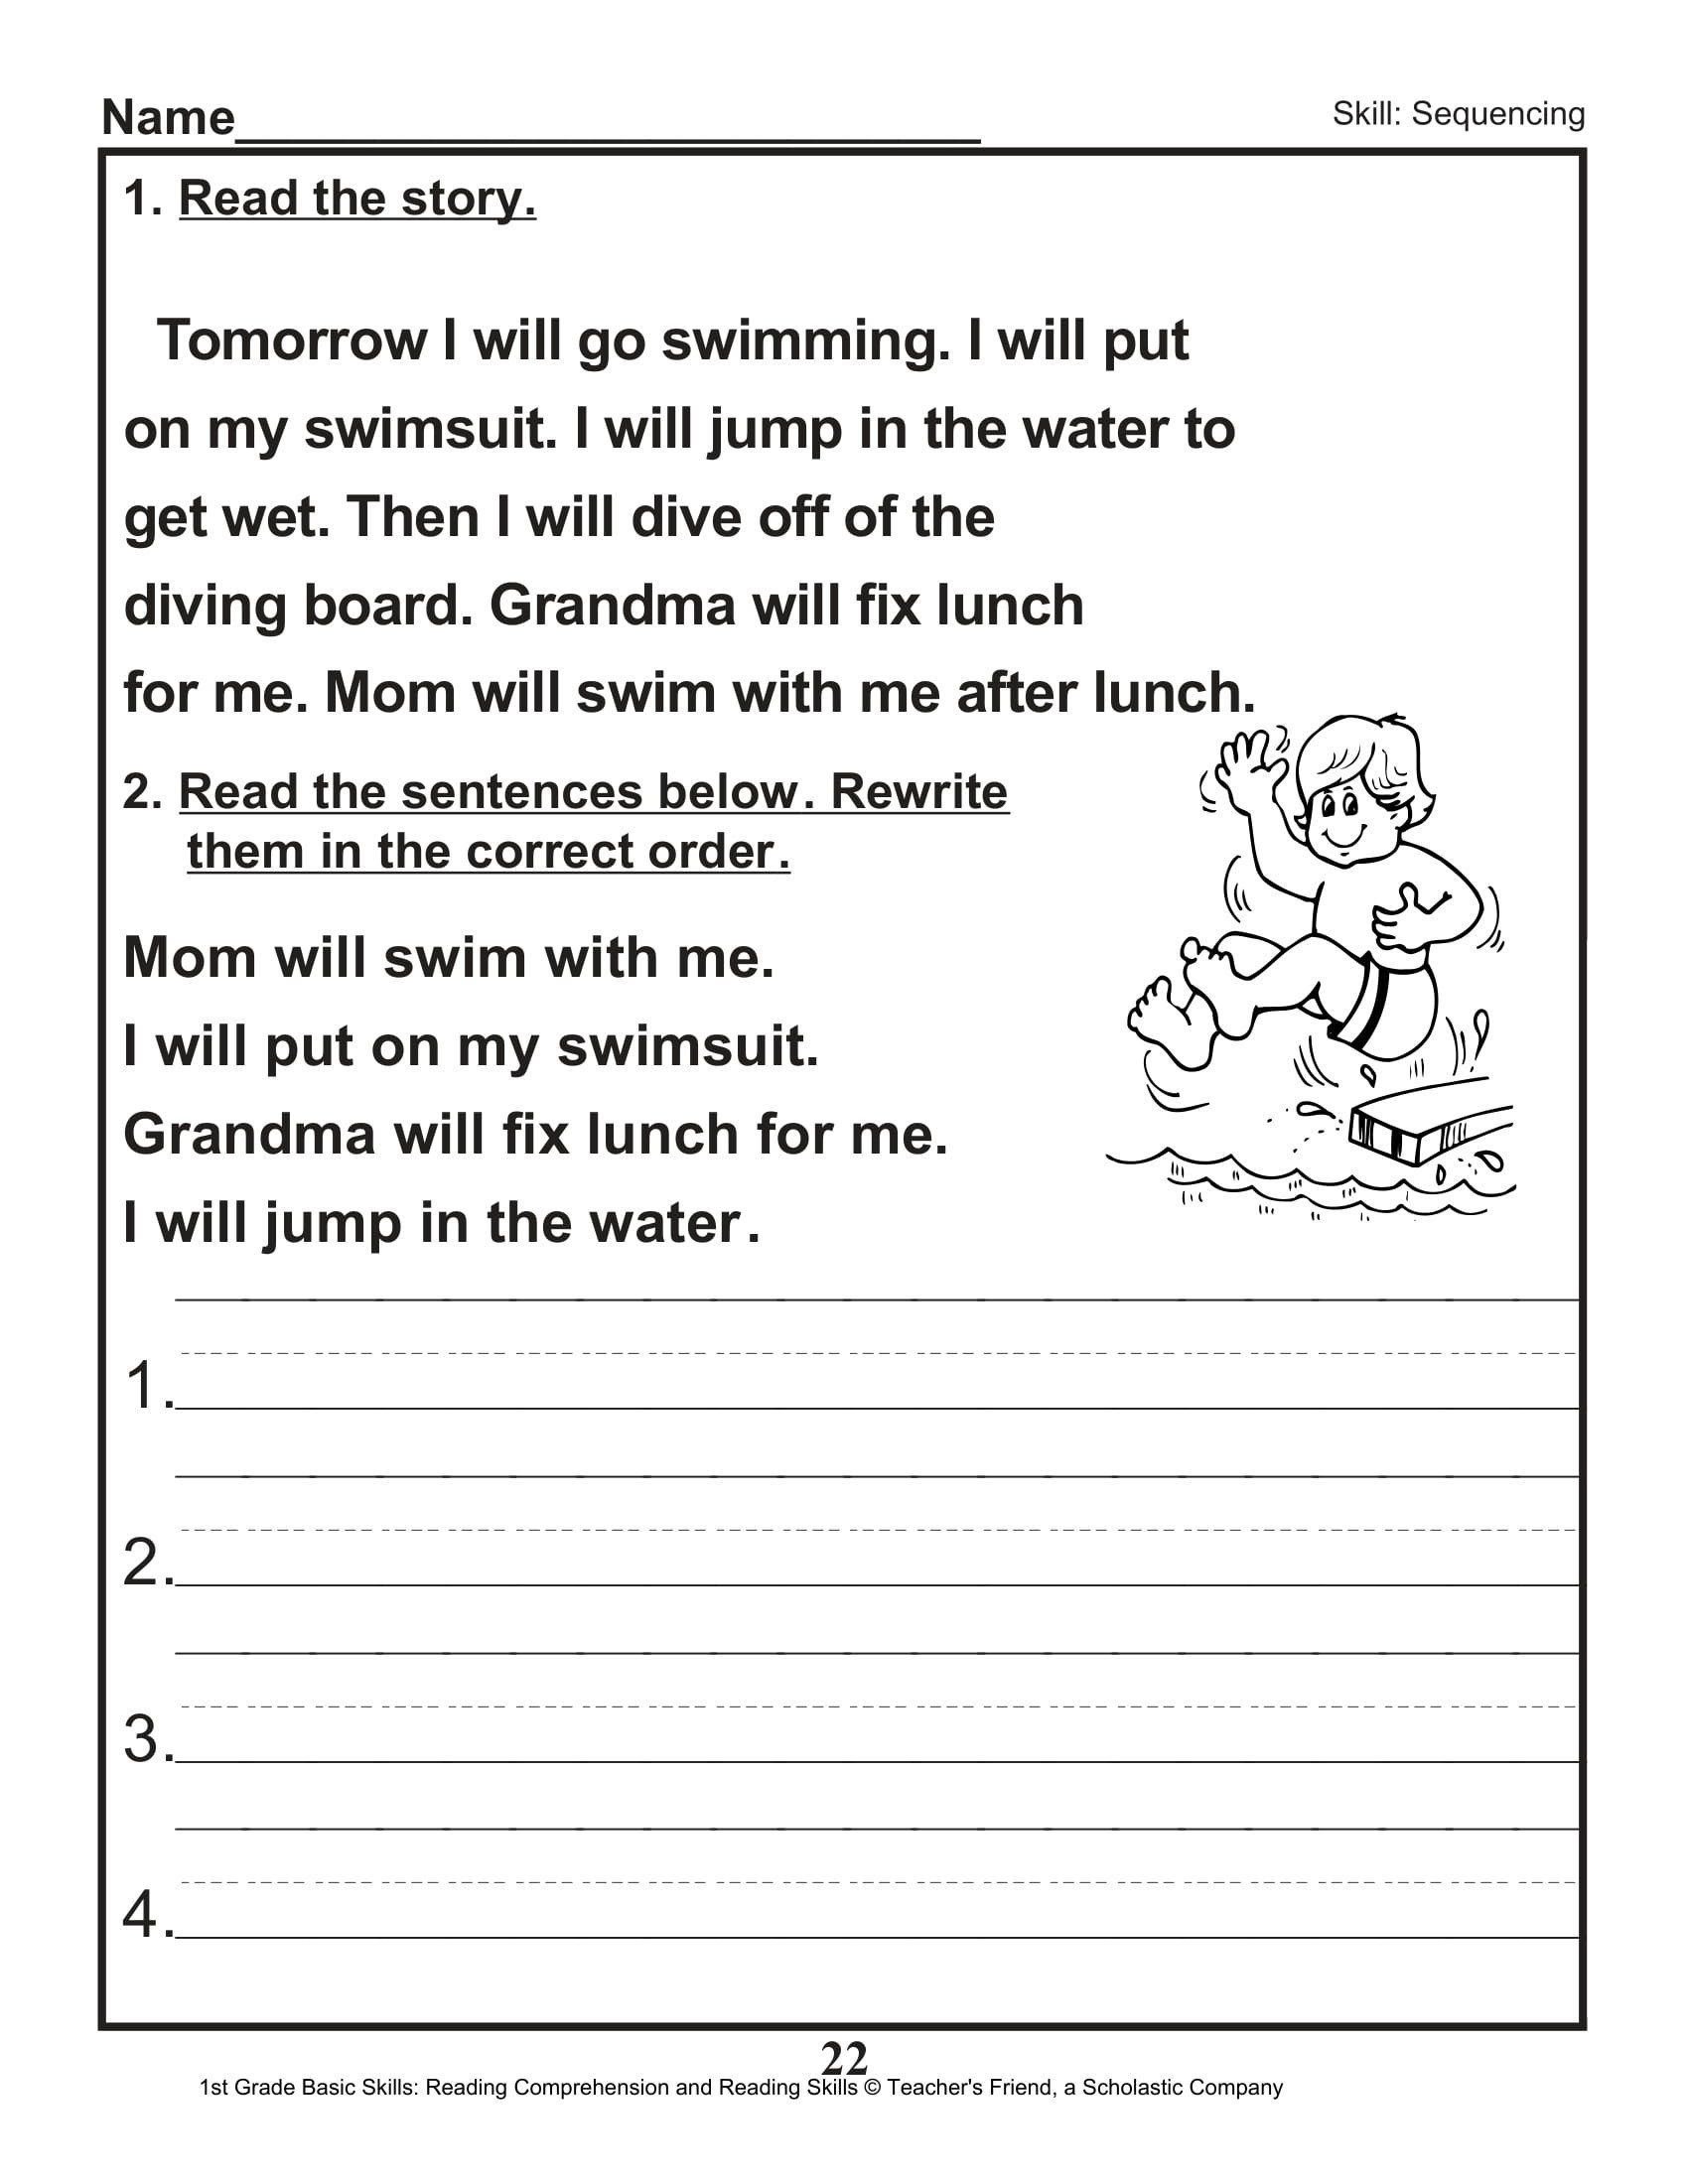 Sequencing Worksheet 2nd Grade Sentence Editing Worksheet